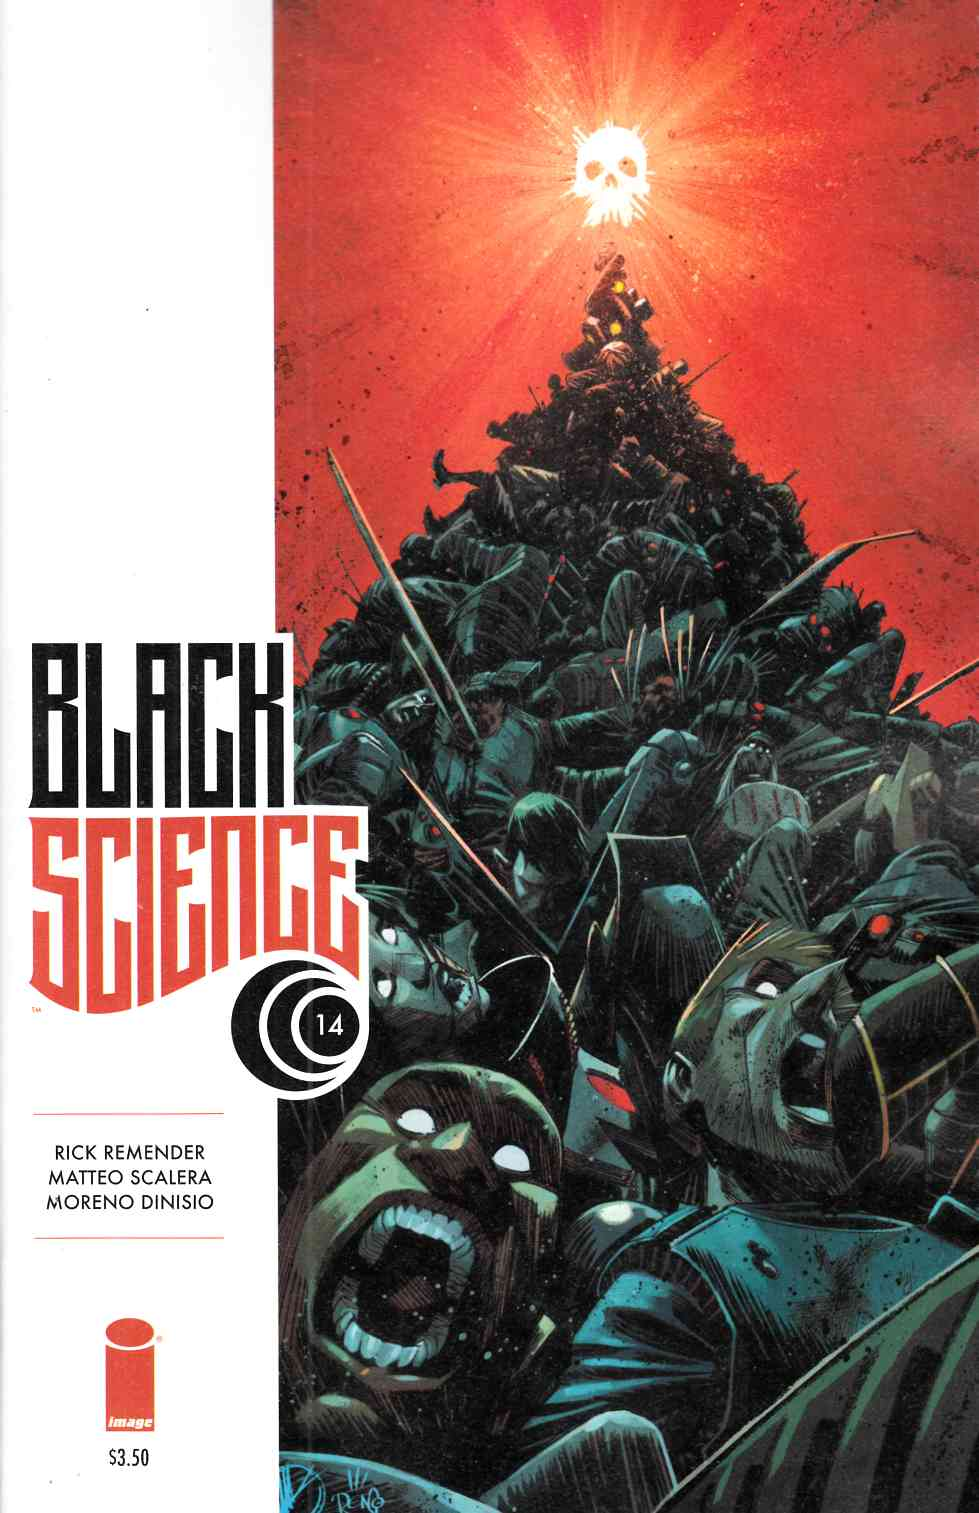 Black Science #14 [Image Comic]